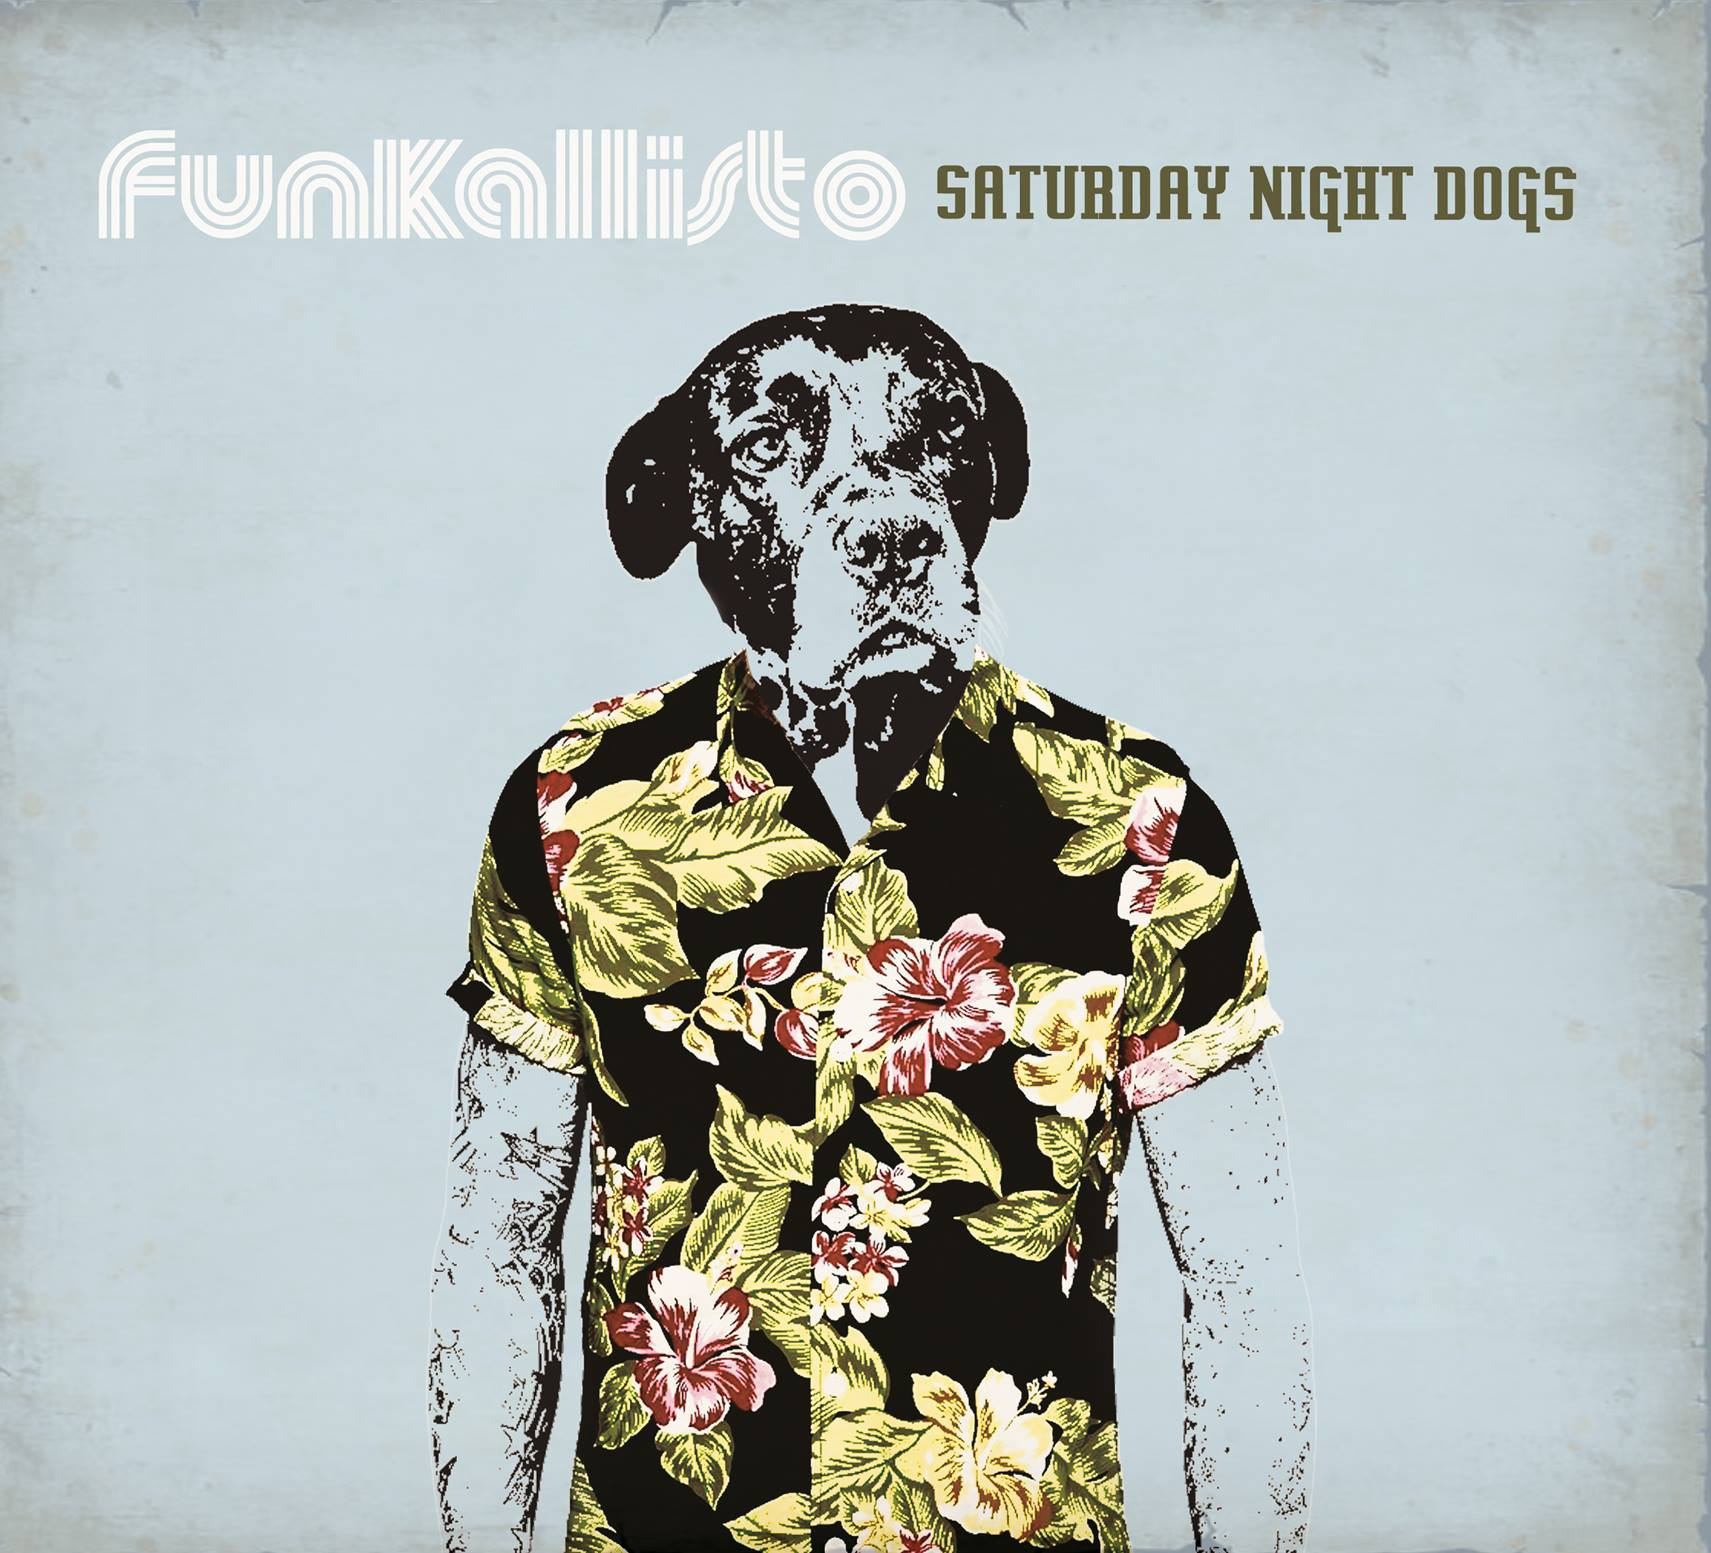 Saturday Night Dogs: il nuovo album dei Funkallisto